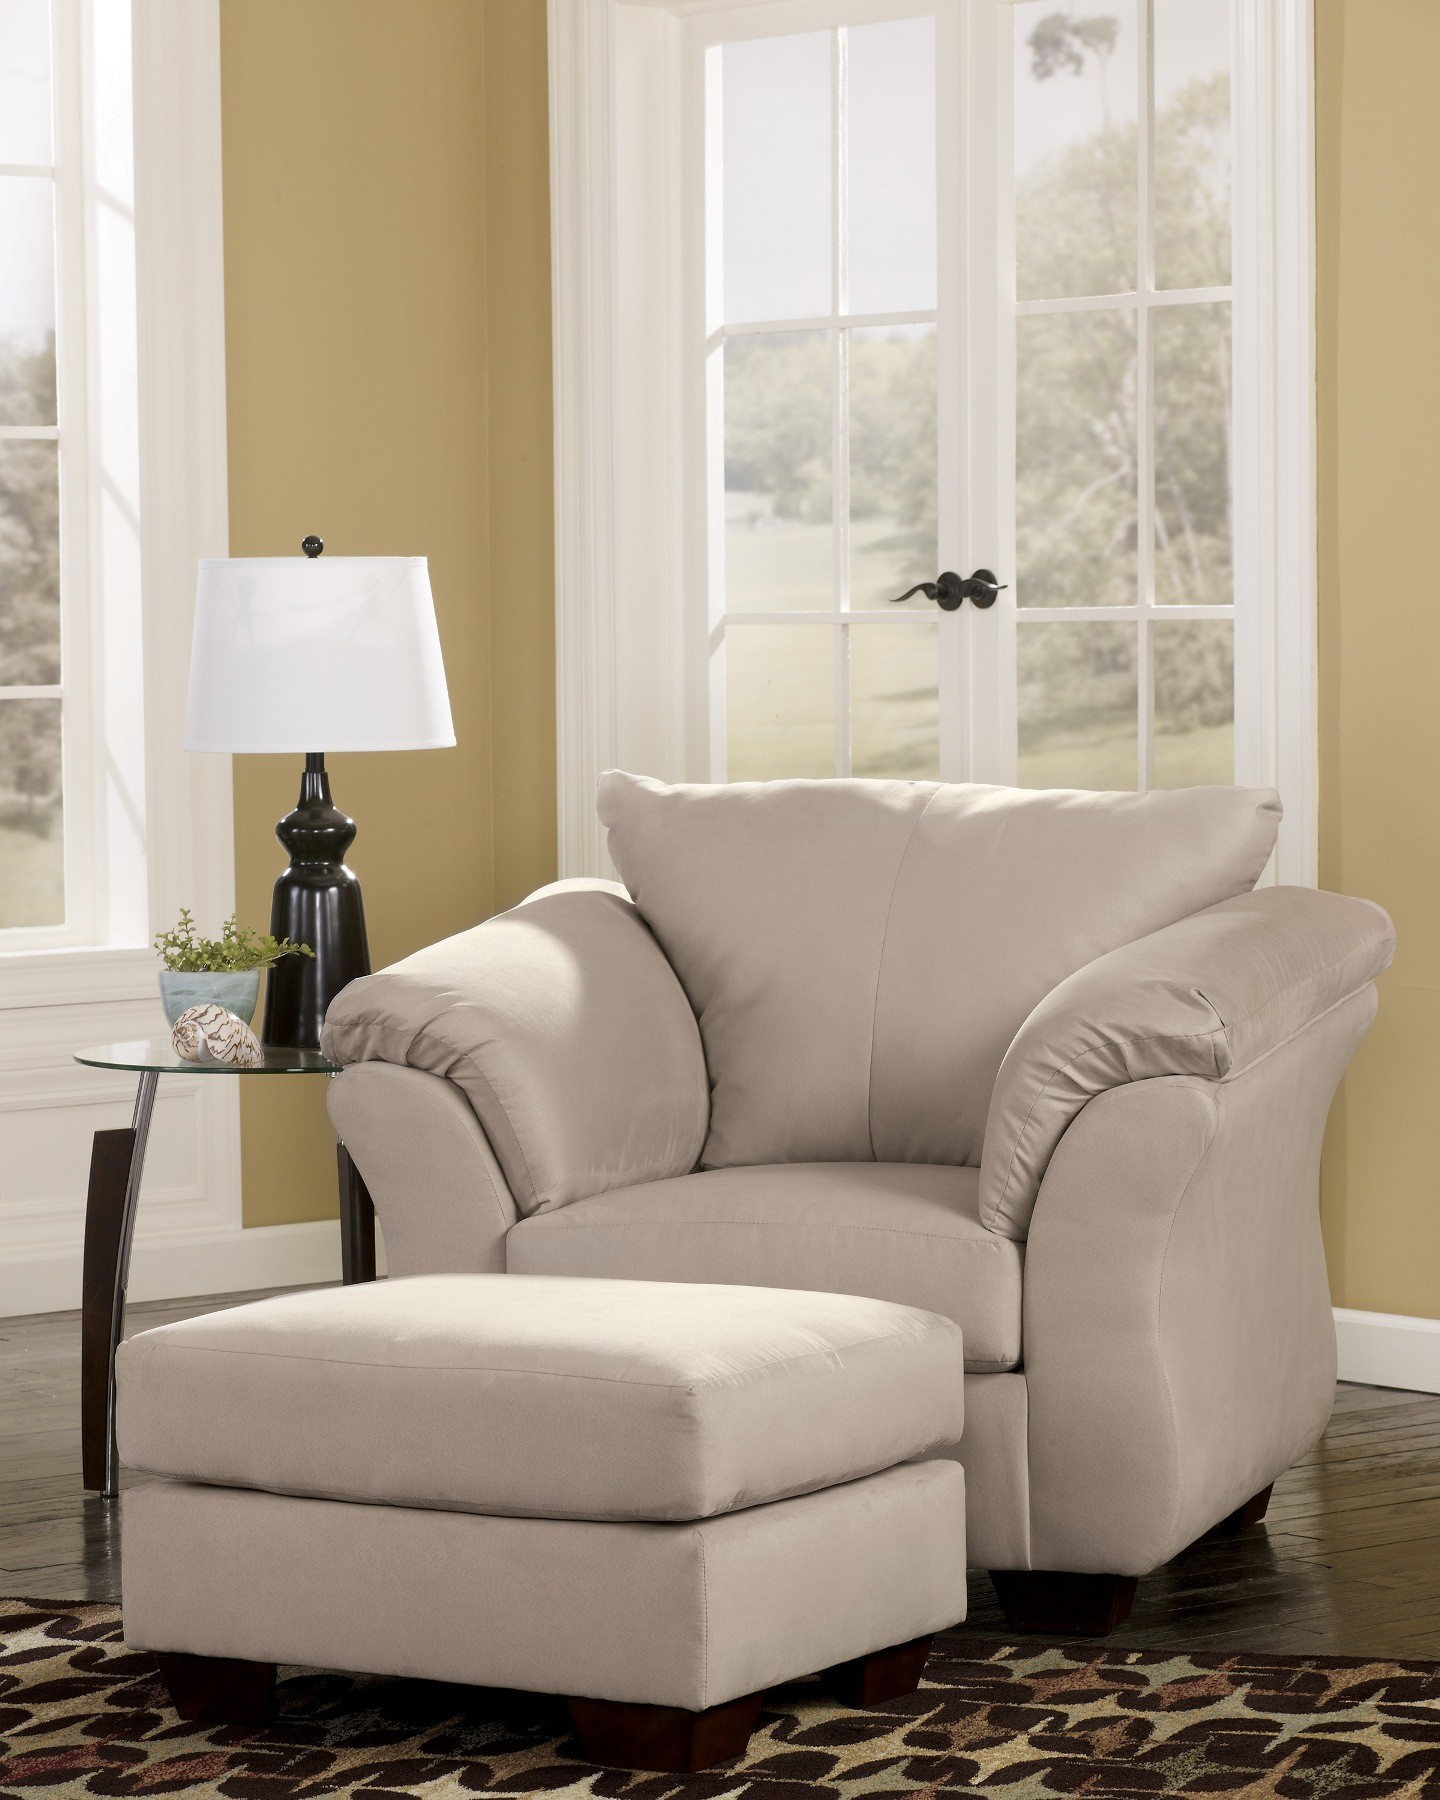 Darcy stone living room set from ashley 75000 coleman furniture